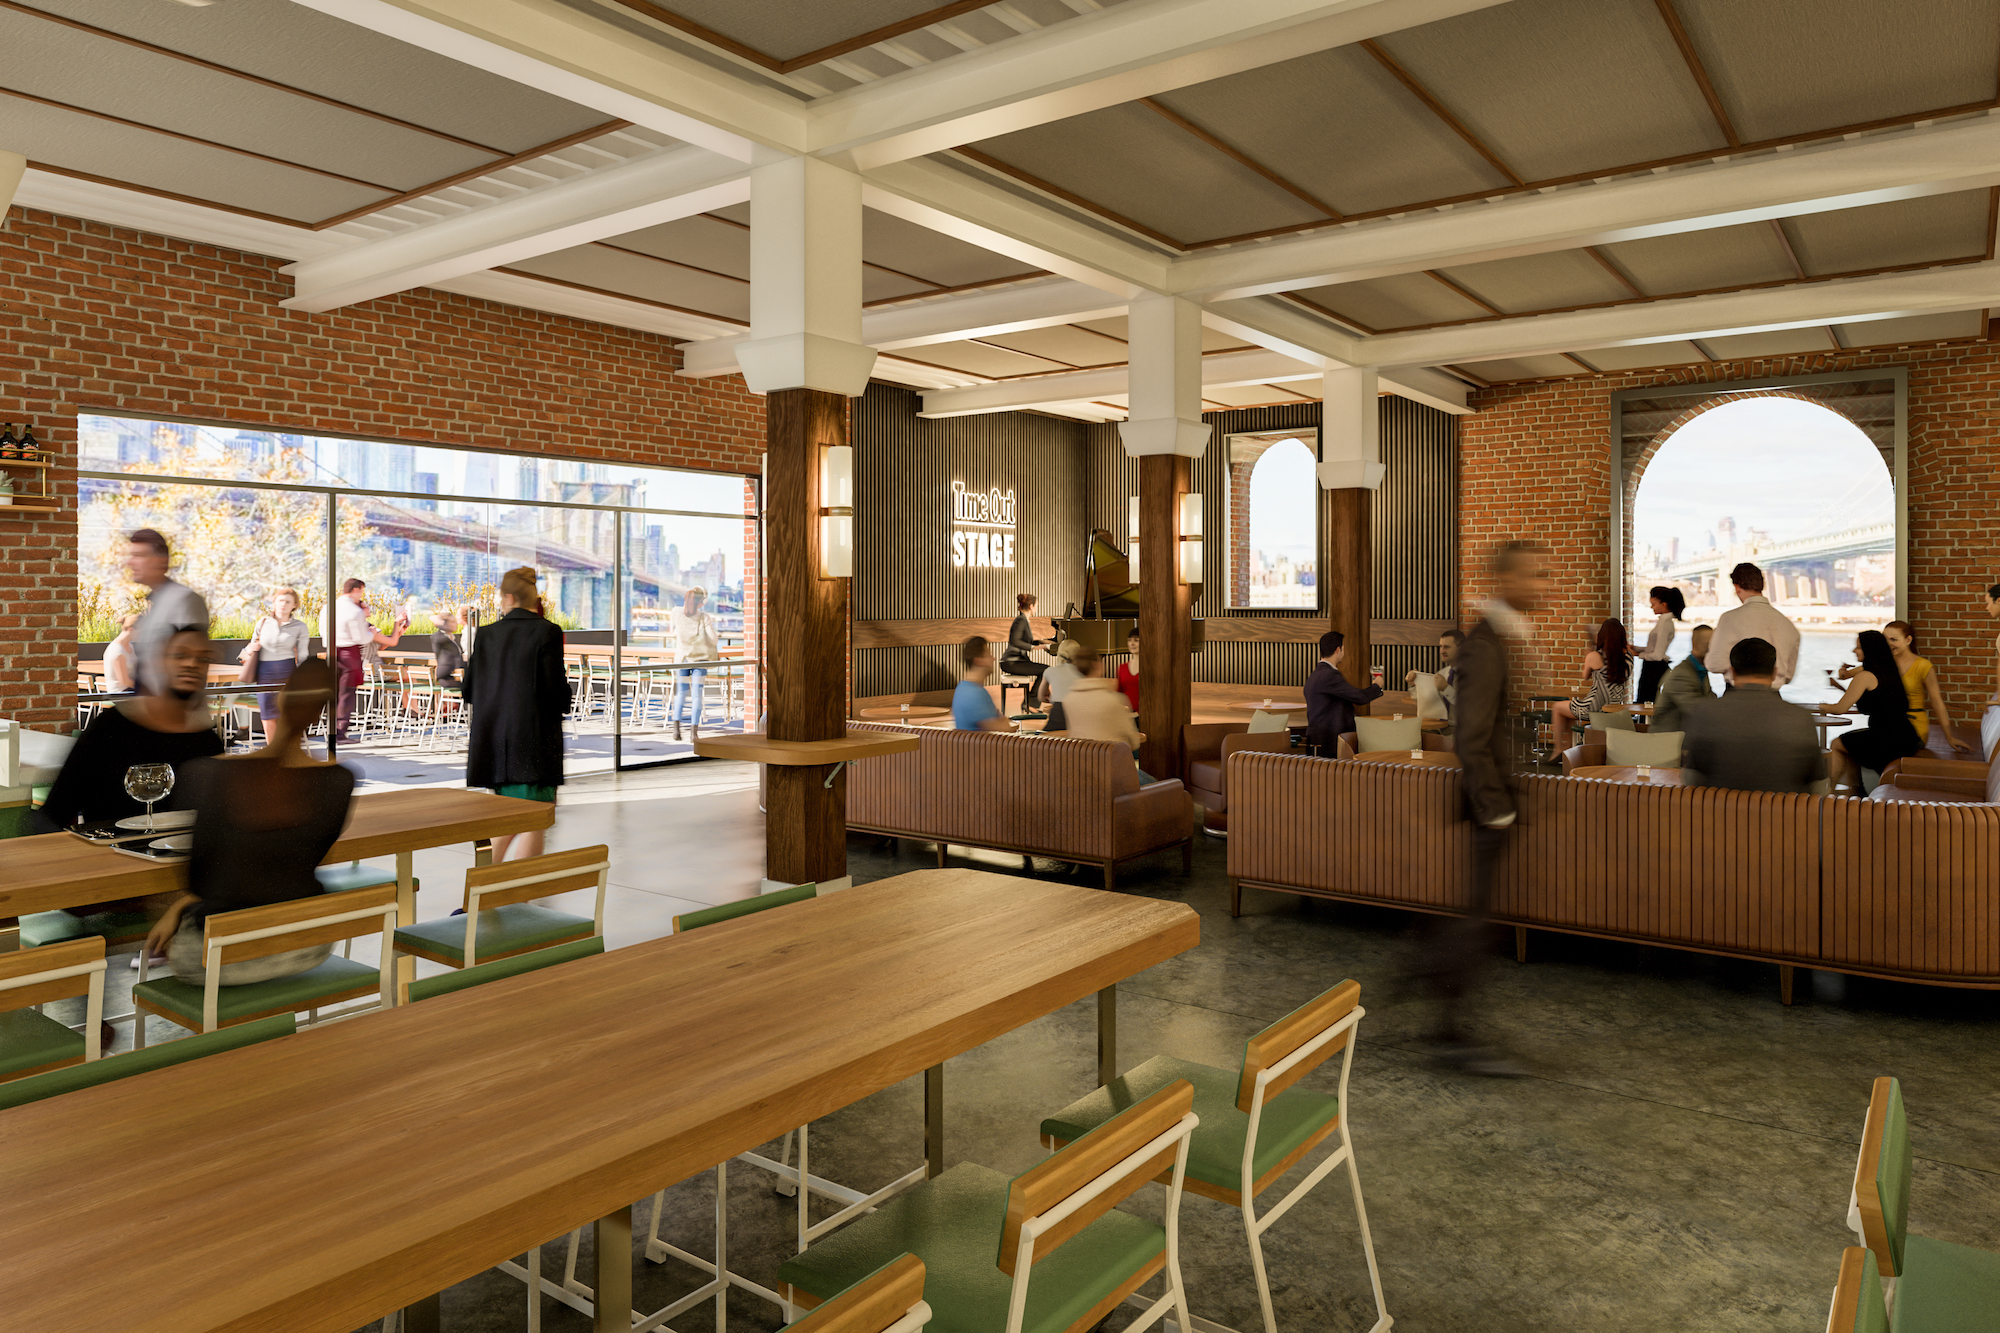 Time Out reveals more vendors and views of Dumbo food hall | 6sqft